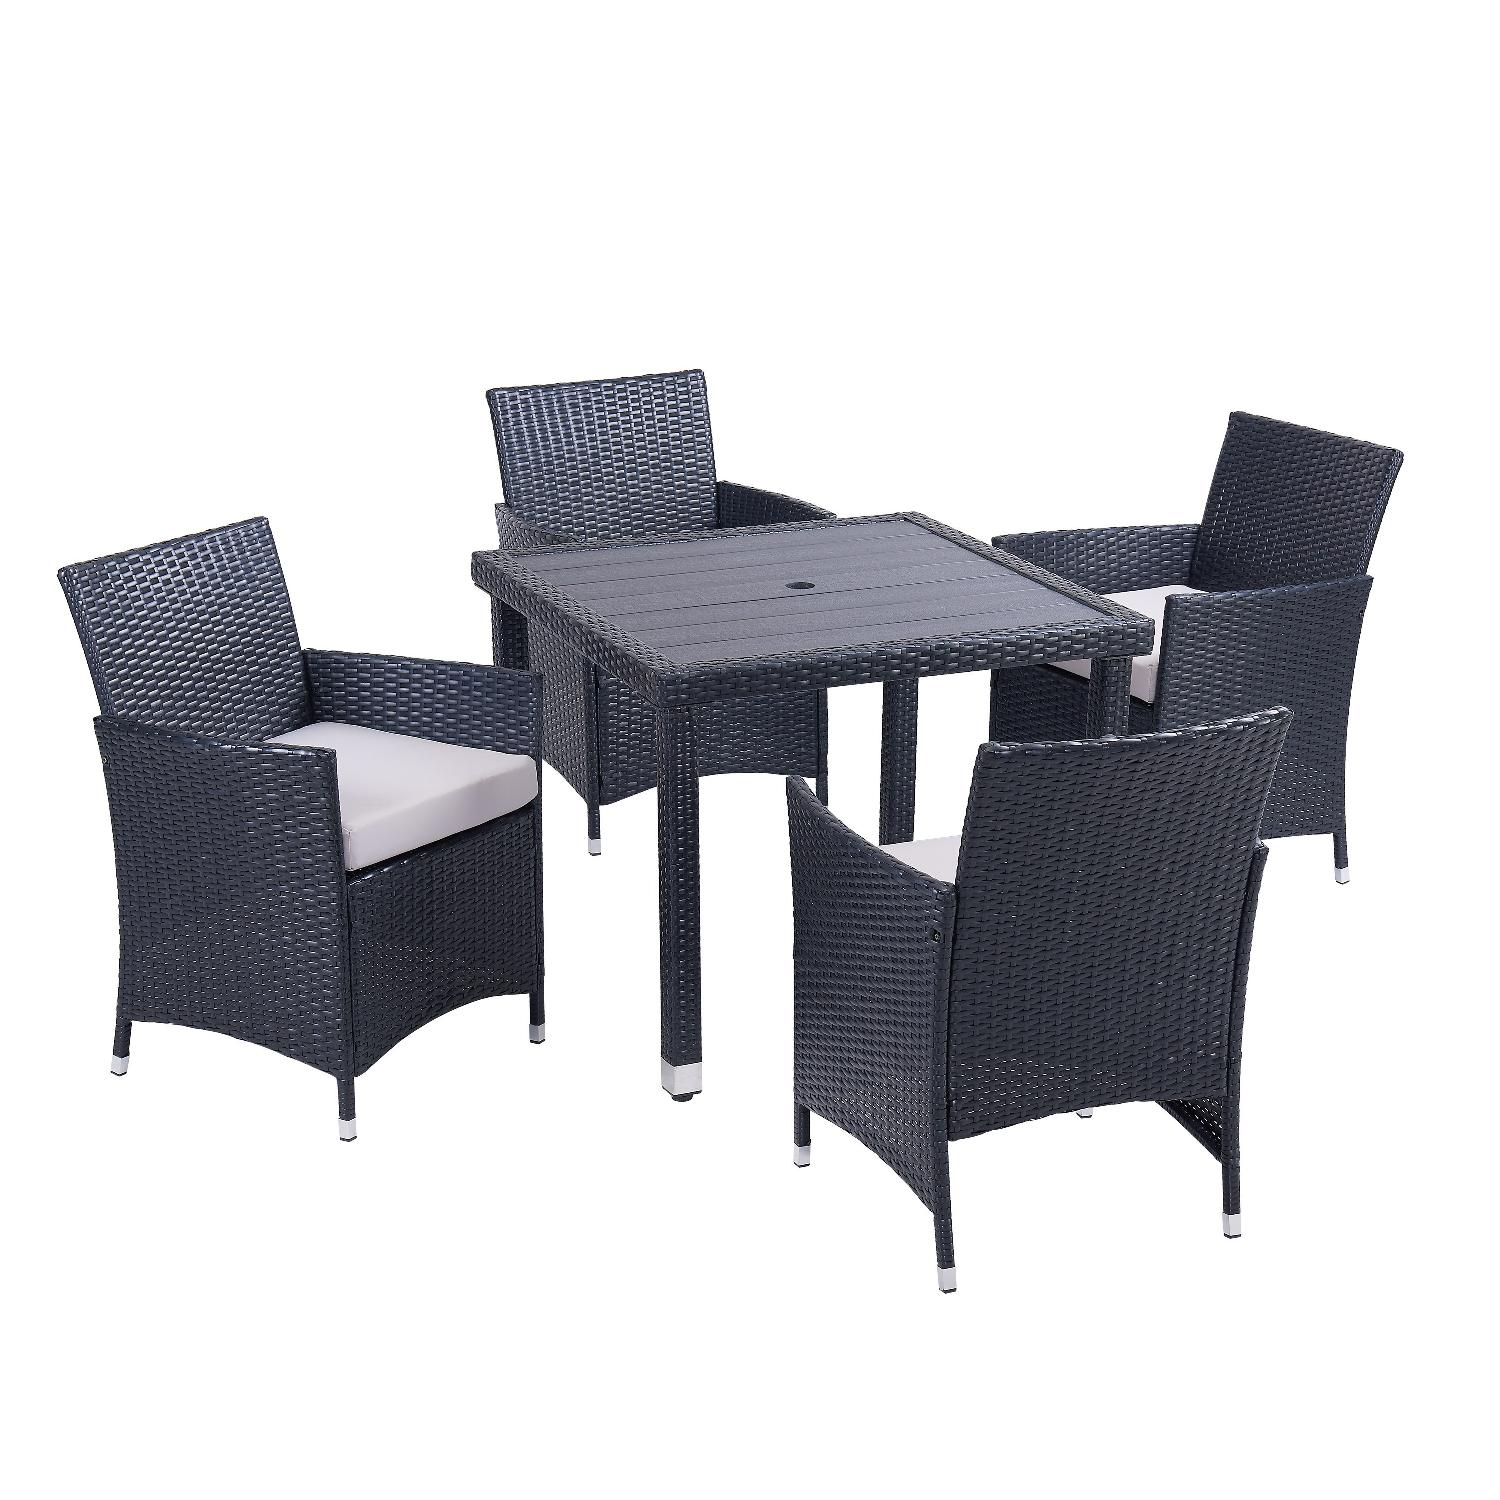 Mercer 3 Piece Outdoor Dining Set w/ Cushion - image-2